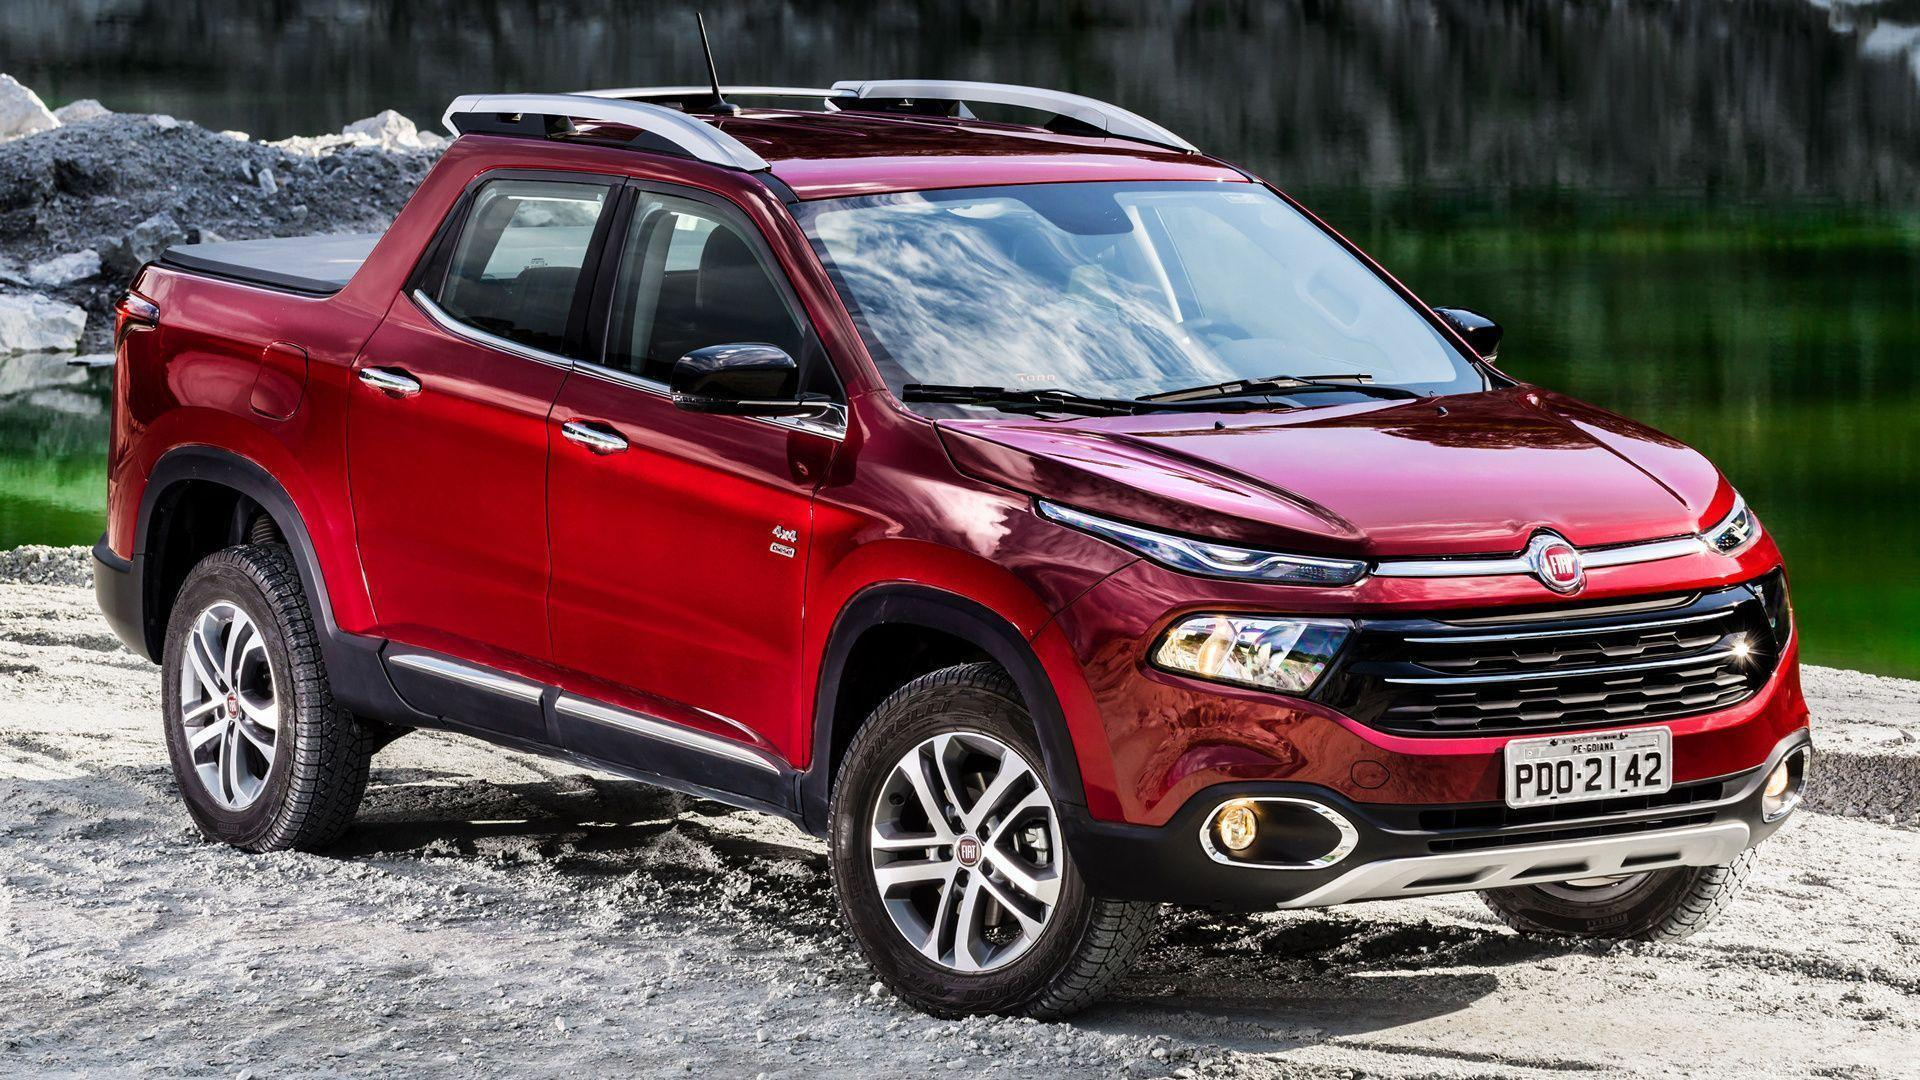 Fiat Toro Volcano (2016) Wallpapers and HD Images - Car Pixel